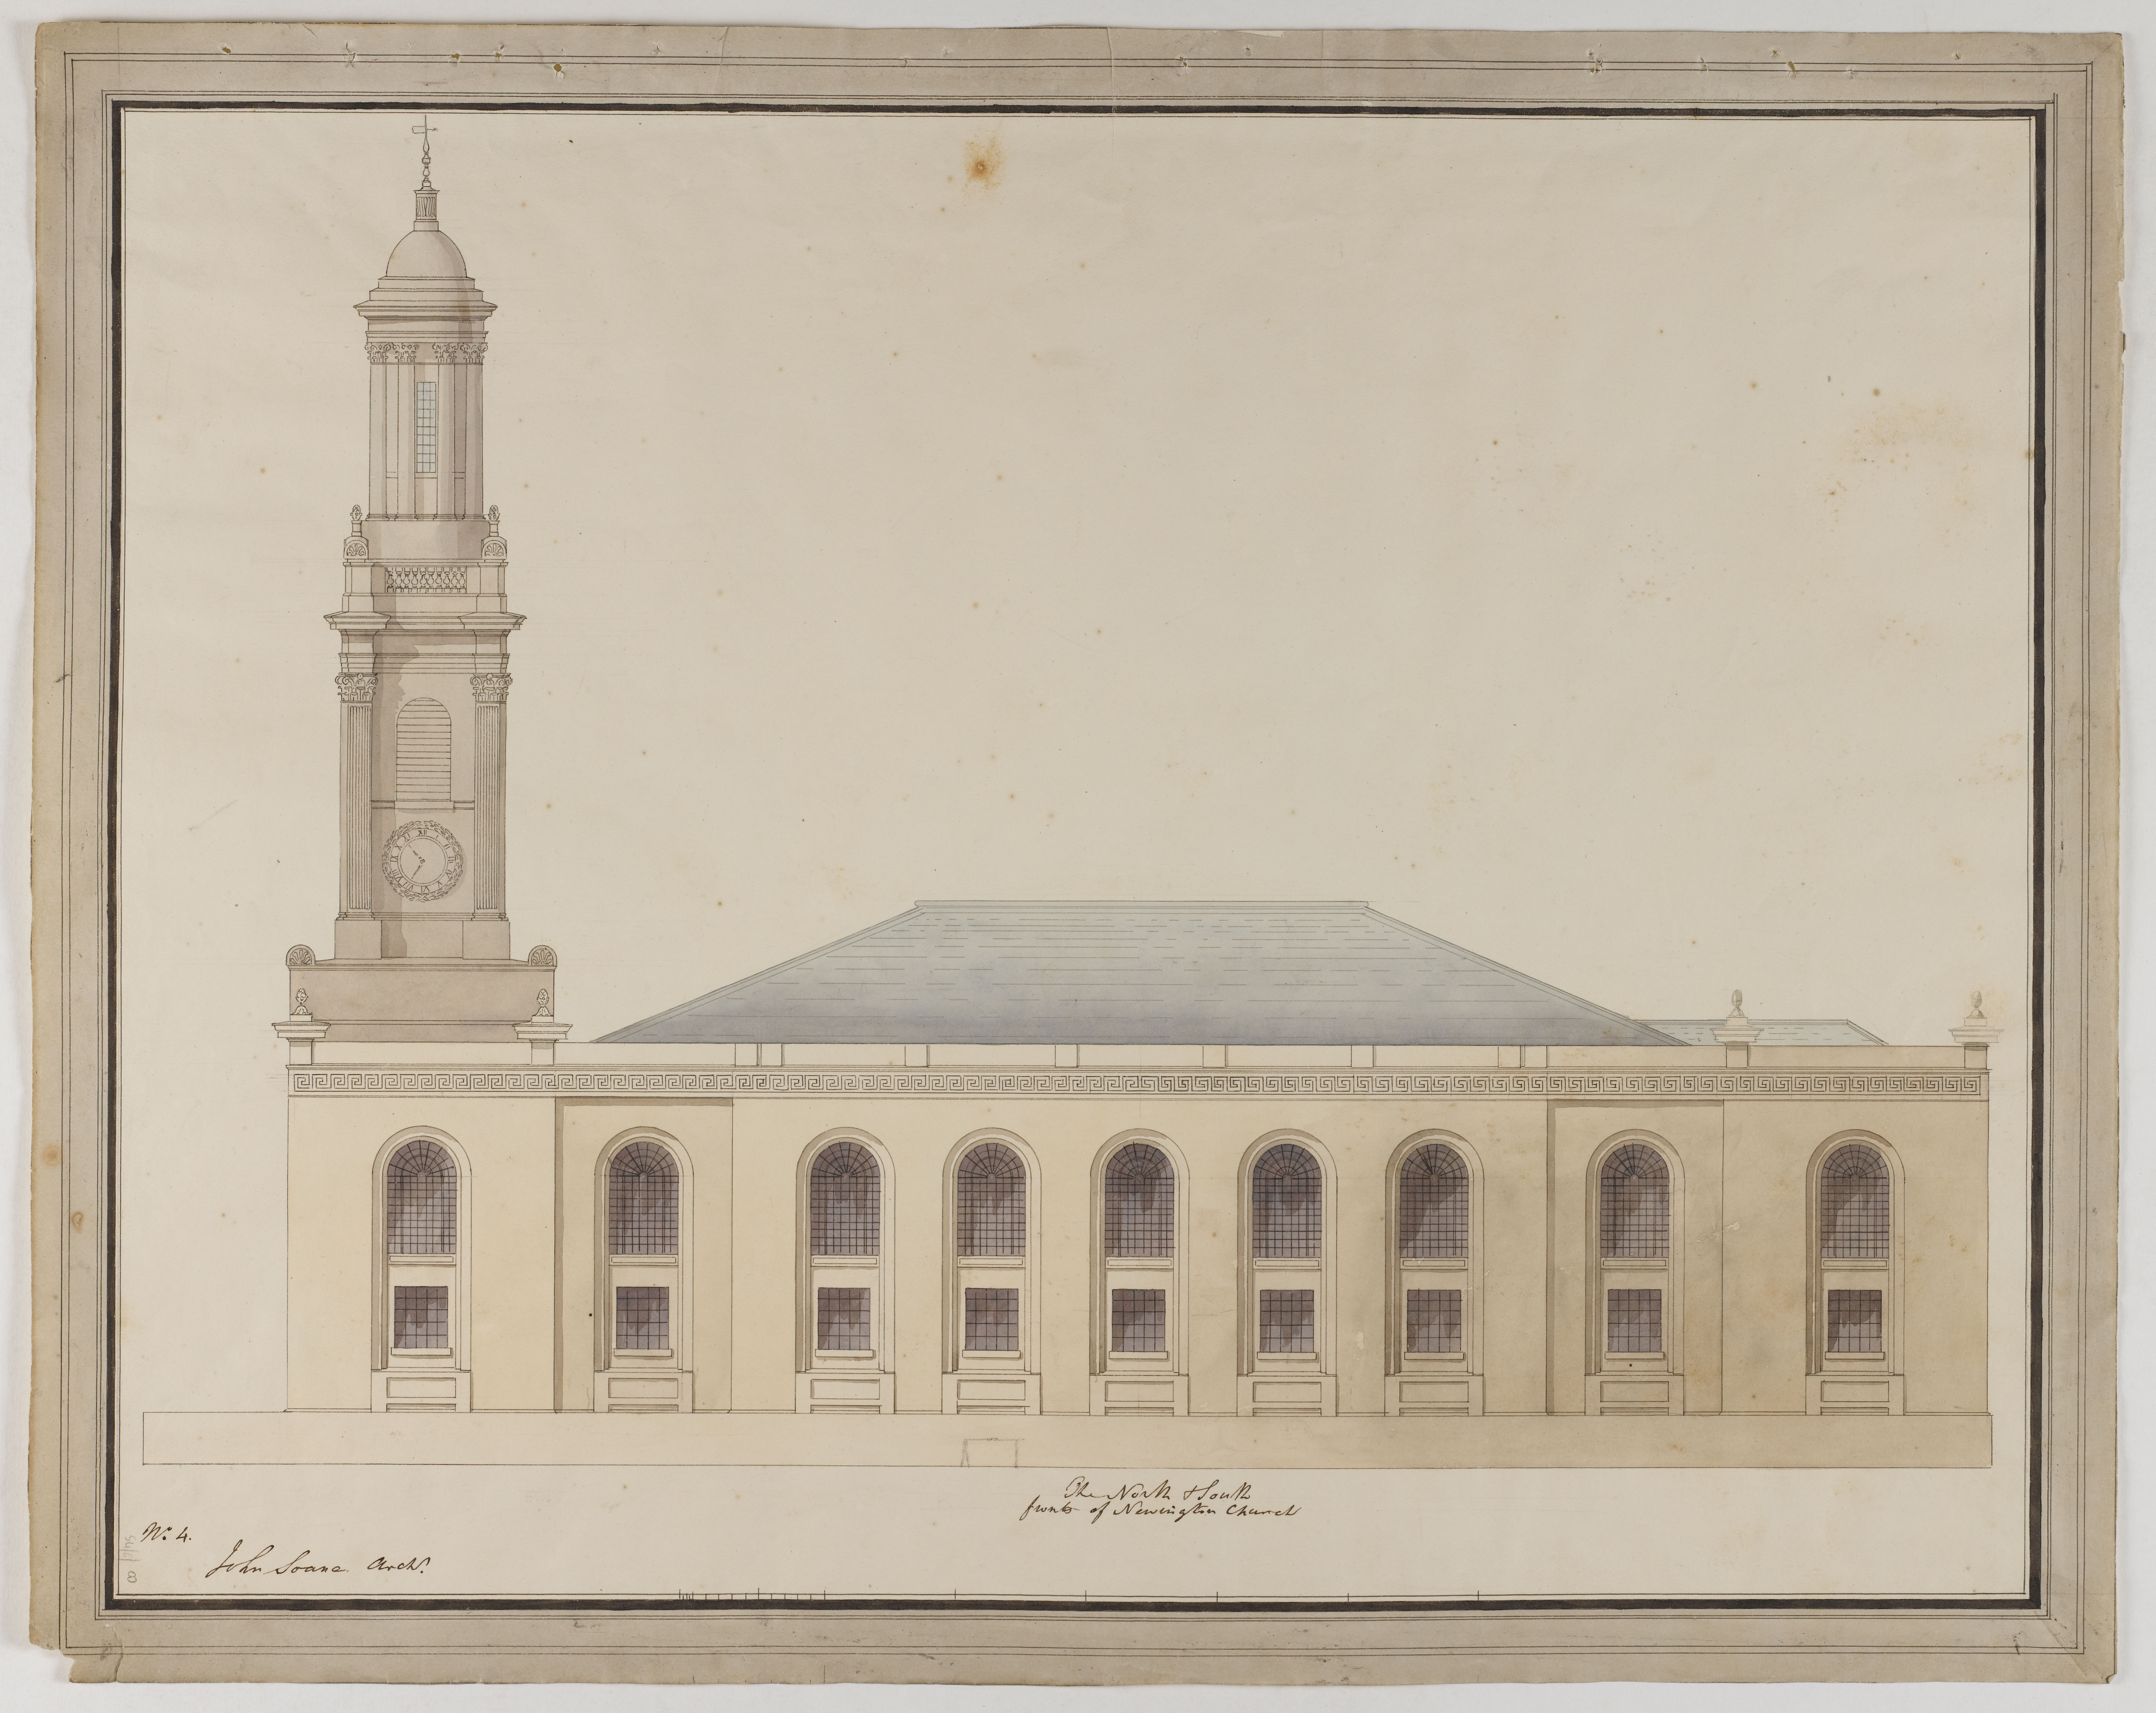 Drawing by Soane office of an elevation of St Peter's, Walworth, datable to 1822